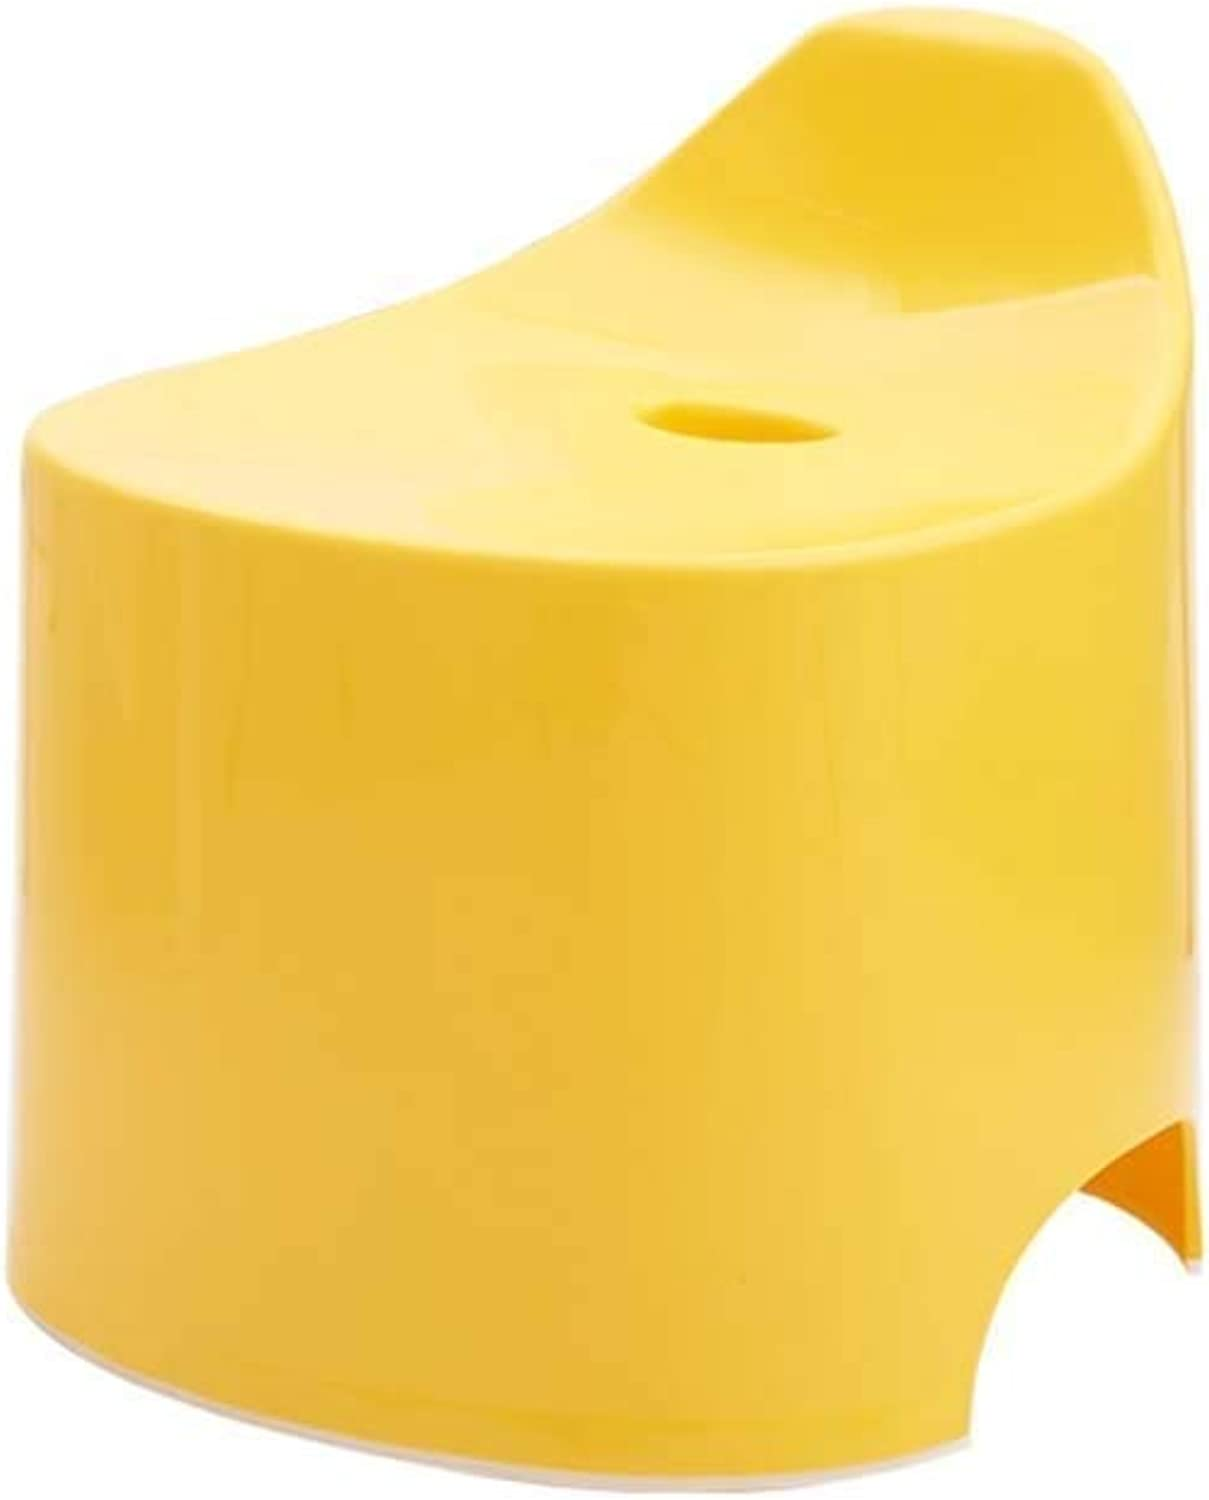 Footstool, Bathroom Anti-Slip Stool, Creative Small Bench, Candy color Multifunctional Storage Footstool (color   Yellow)